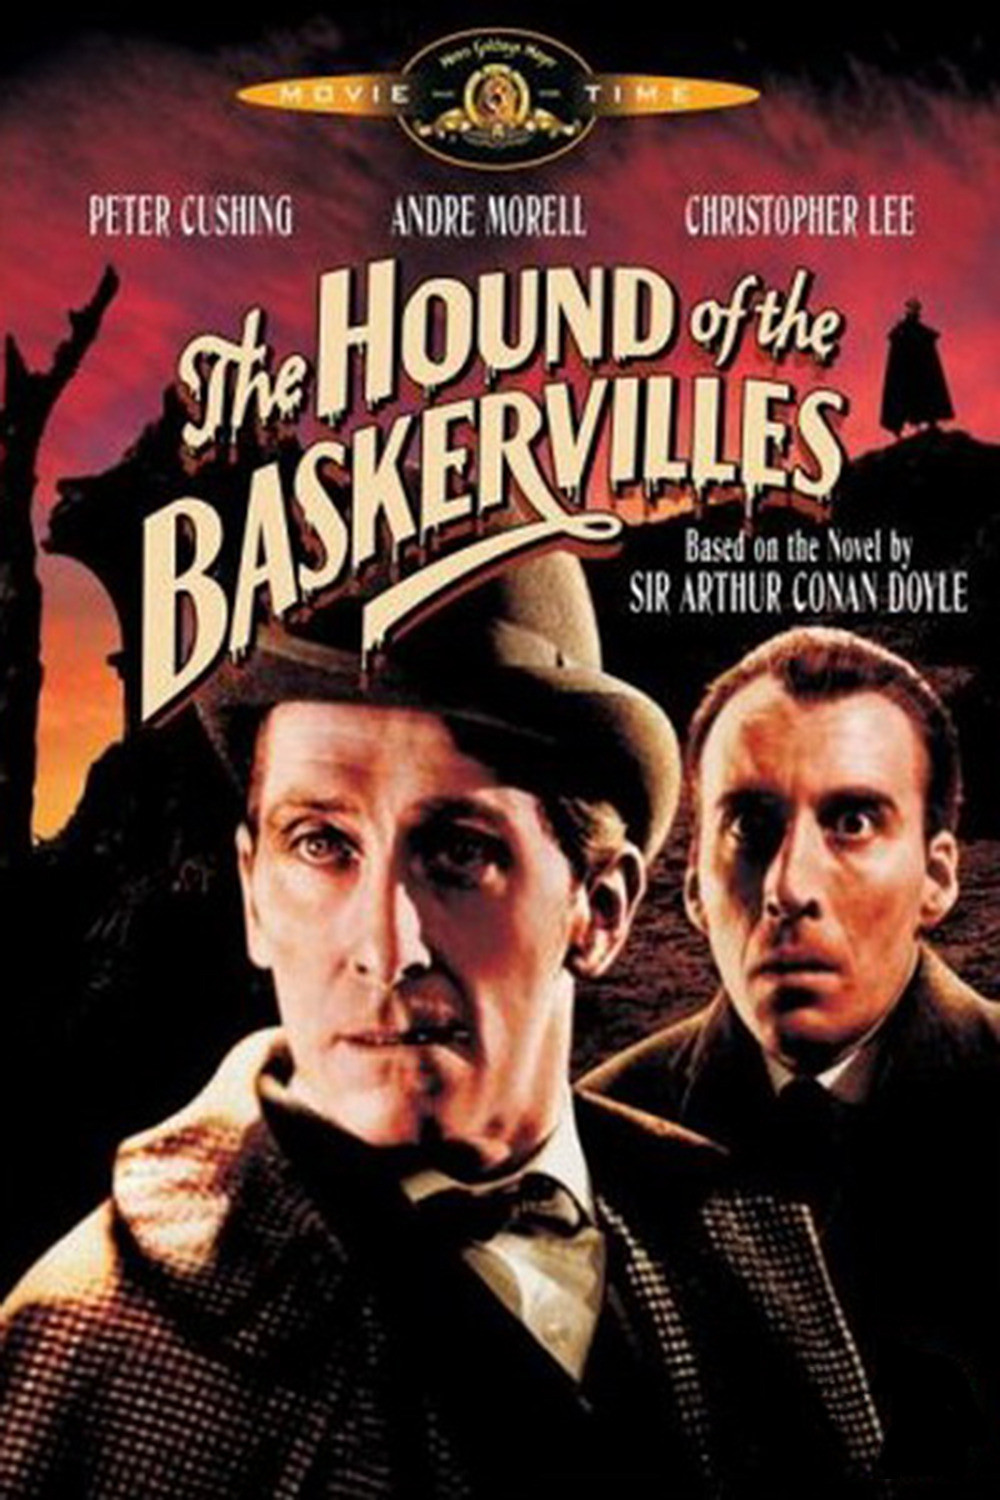 the myth of hugo baskerville The myth of the beast  the story begins with a case of forced imprisonment and aristocratic crime – when the dastardly hugo baskerville abducts the yeoman's daughter and locks her in the upper part of the ancestral hall.